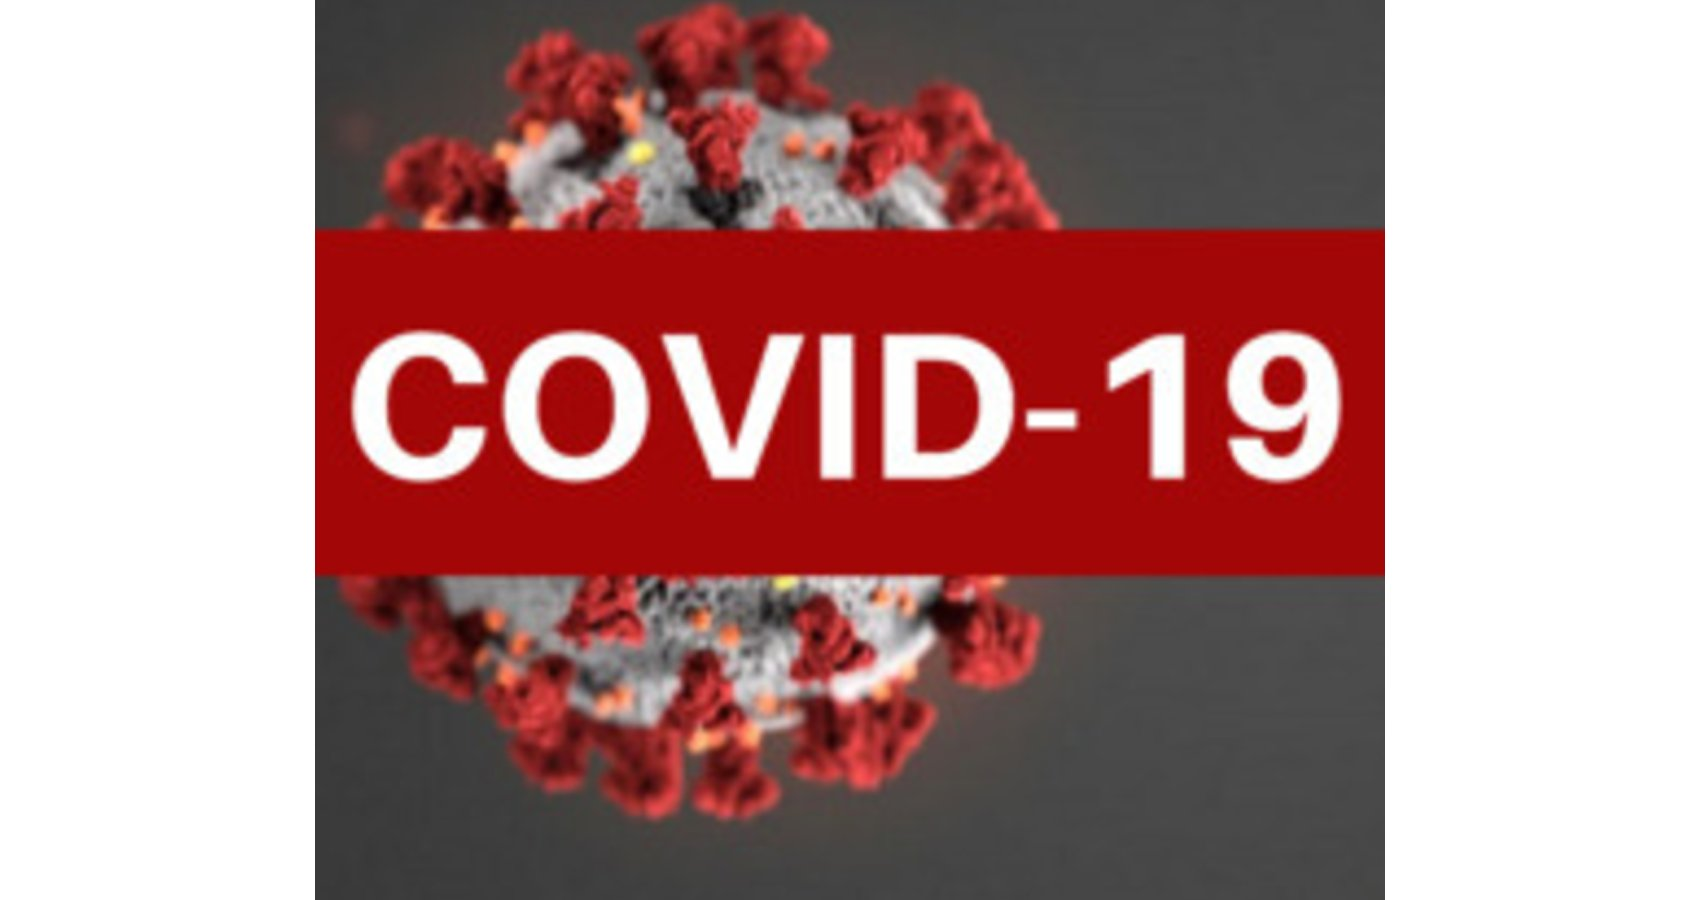 Covid-19 Cases Are Declining Sharply In USA